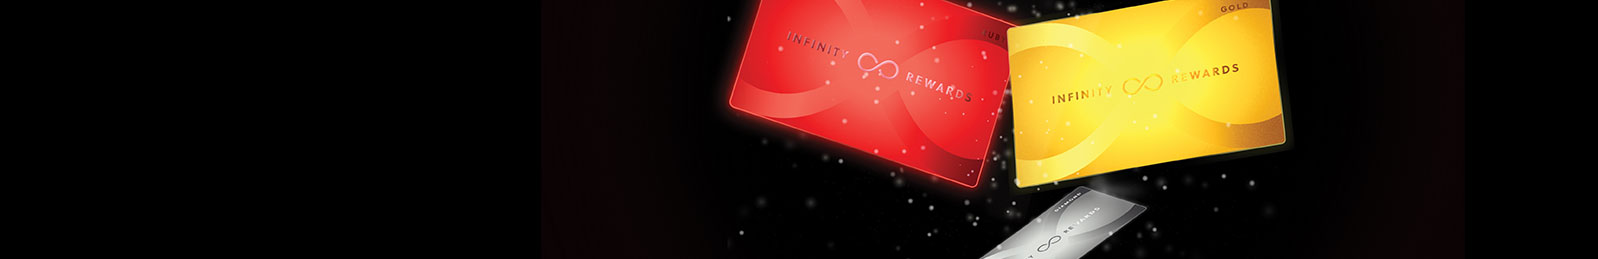 infinity-rewards-banner